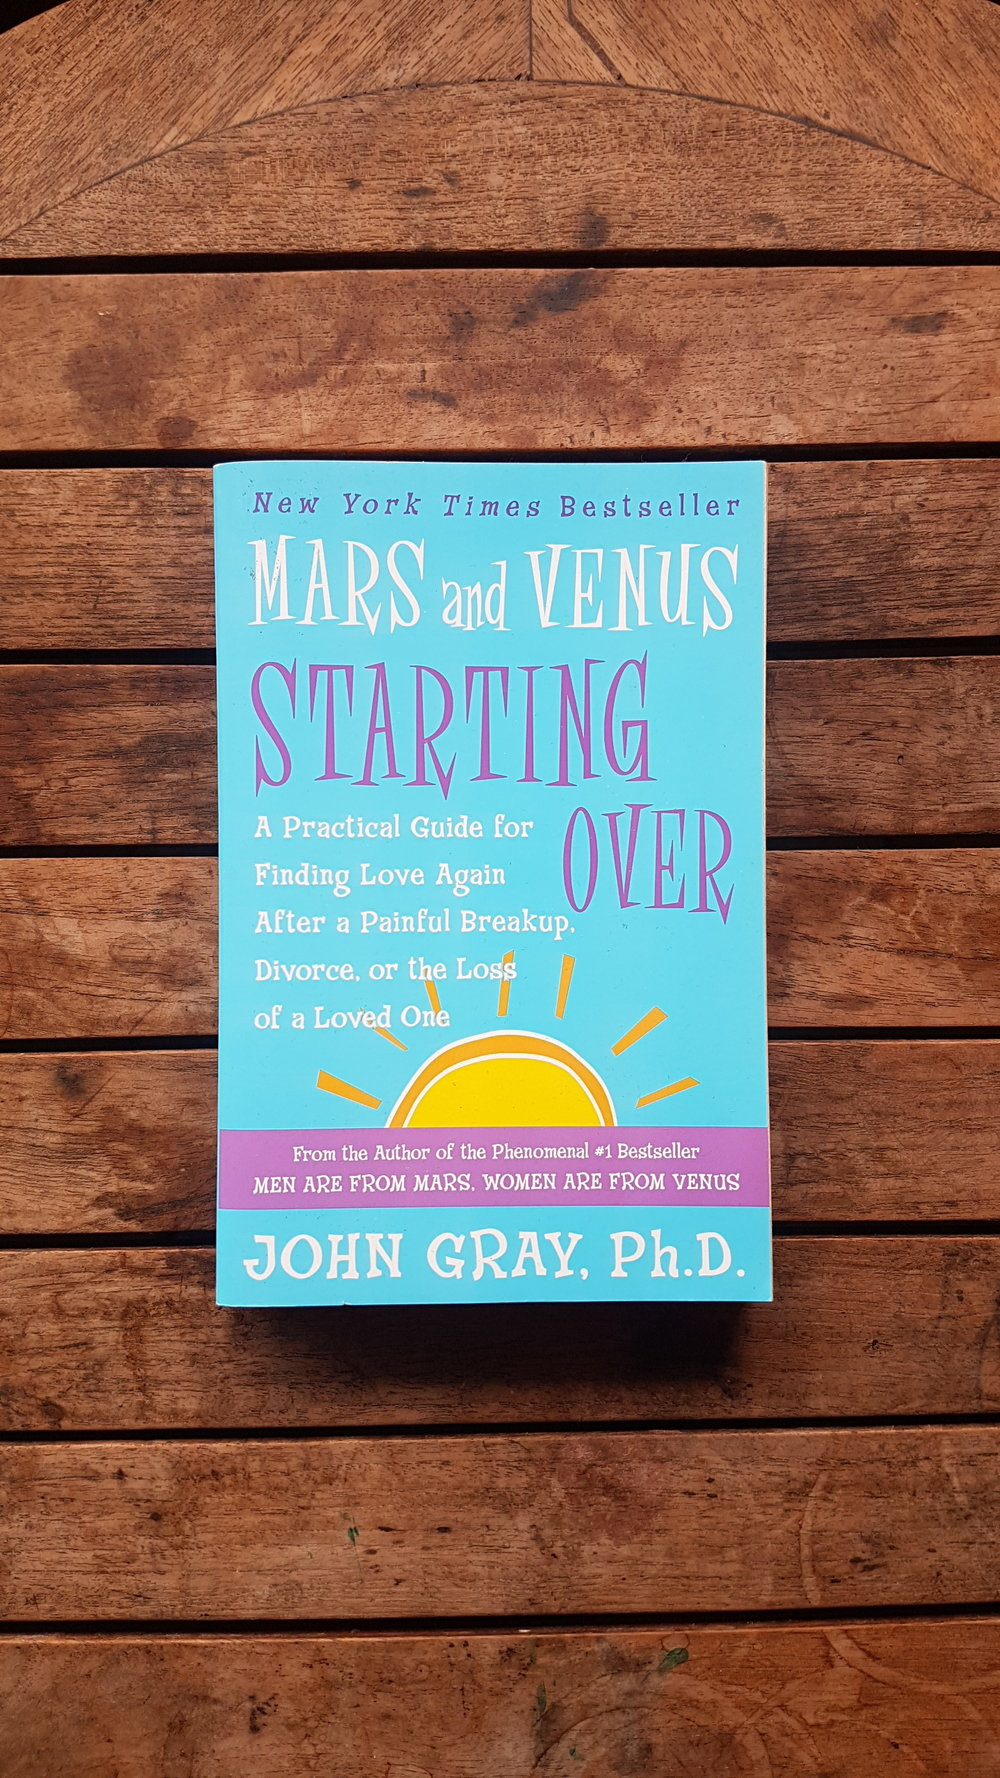 Mars and Venus Starting Over: A Practical Guide for Finding Love Again After a Painful Breakup, Divorce, or the Loss of a Loved One   by John Gray